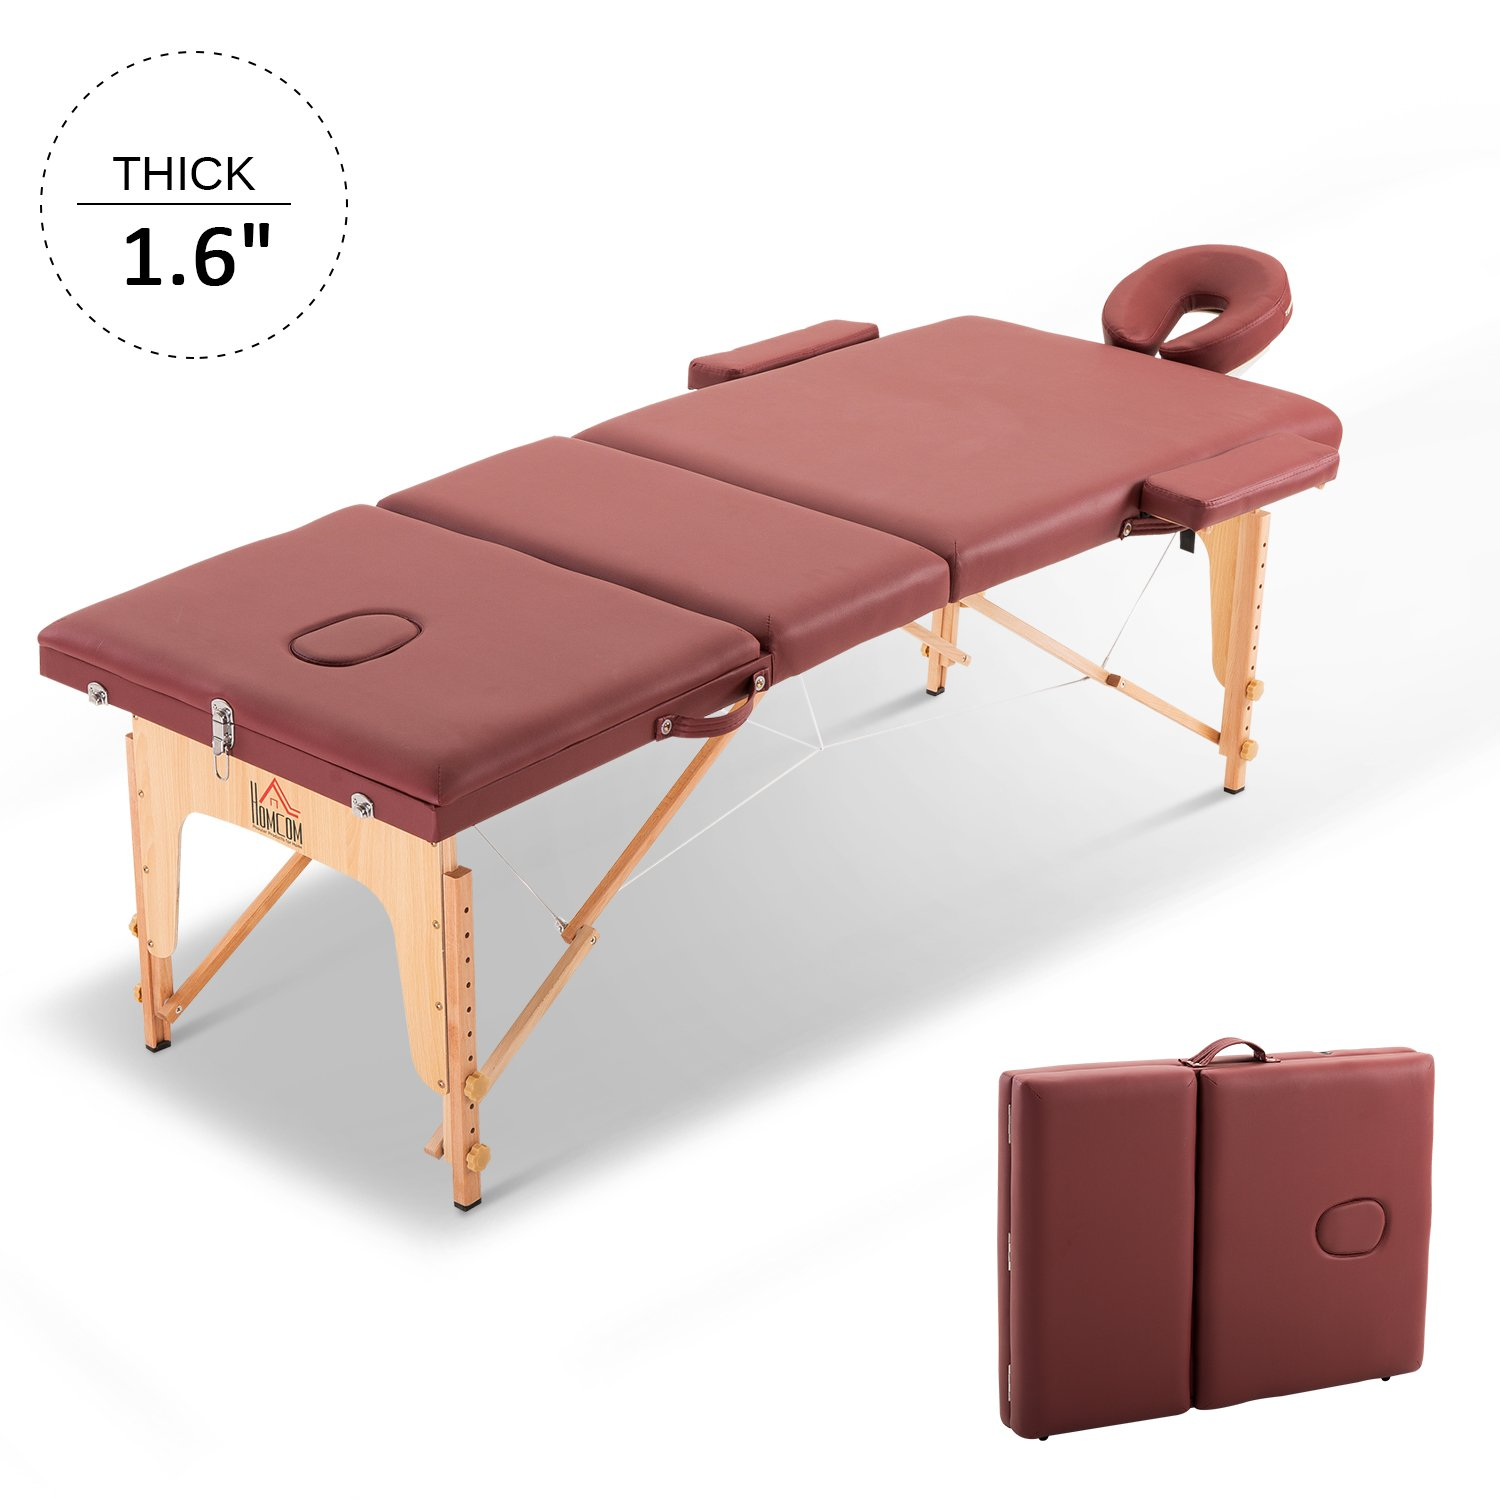 HOMCOM 73 3 Section Foldable Massage Table Professional Salon SPA Facial Couch Tatoo Bed with Carry Bag Red Aosom Canada CA700-078RD0231